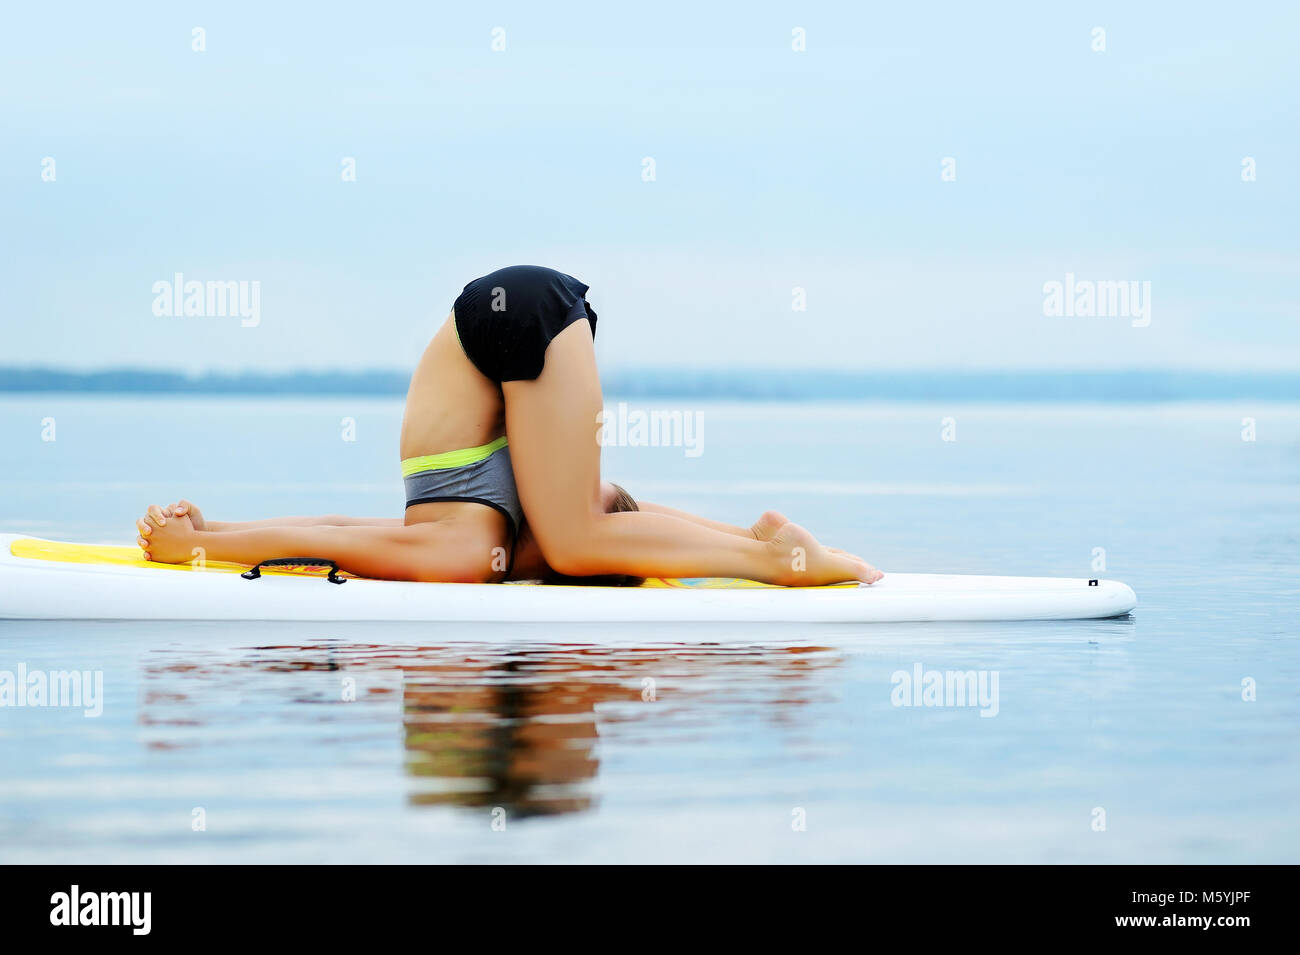 Woman practicing  Ear Pressure yoga Pose on paddle board Stock Photo